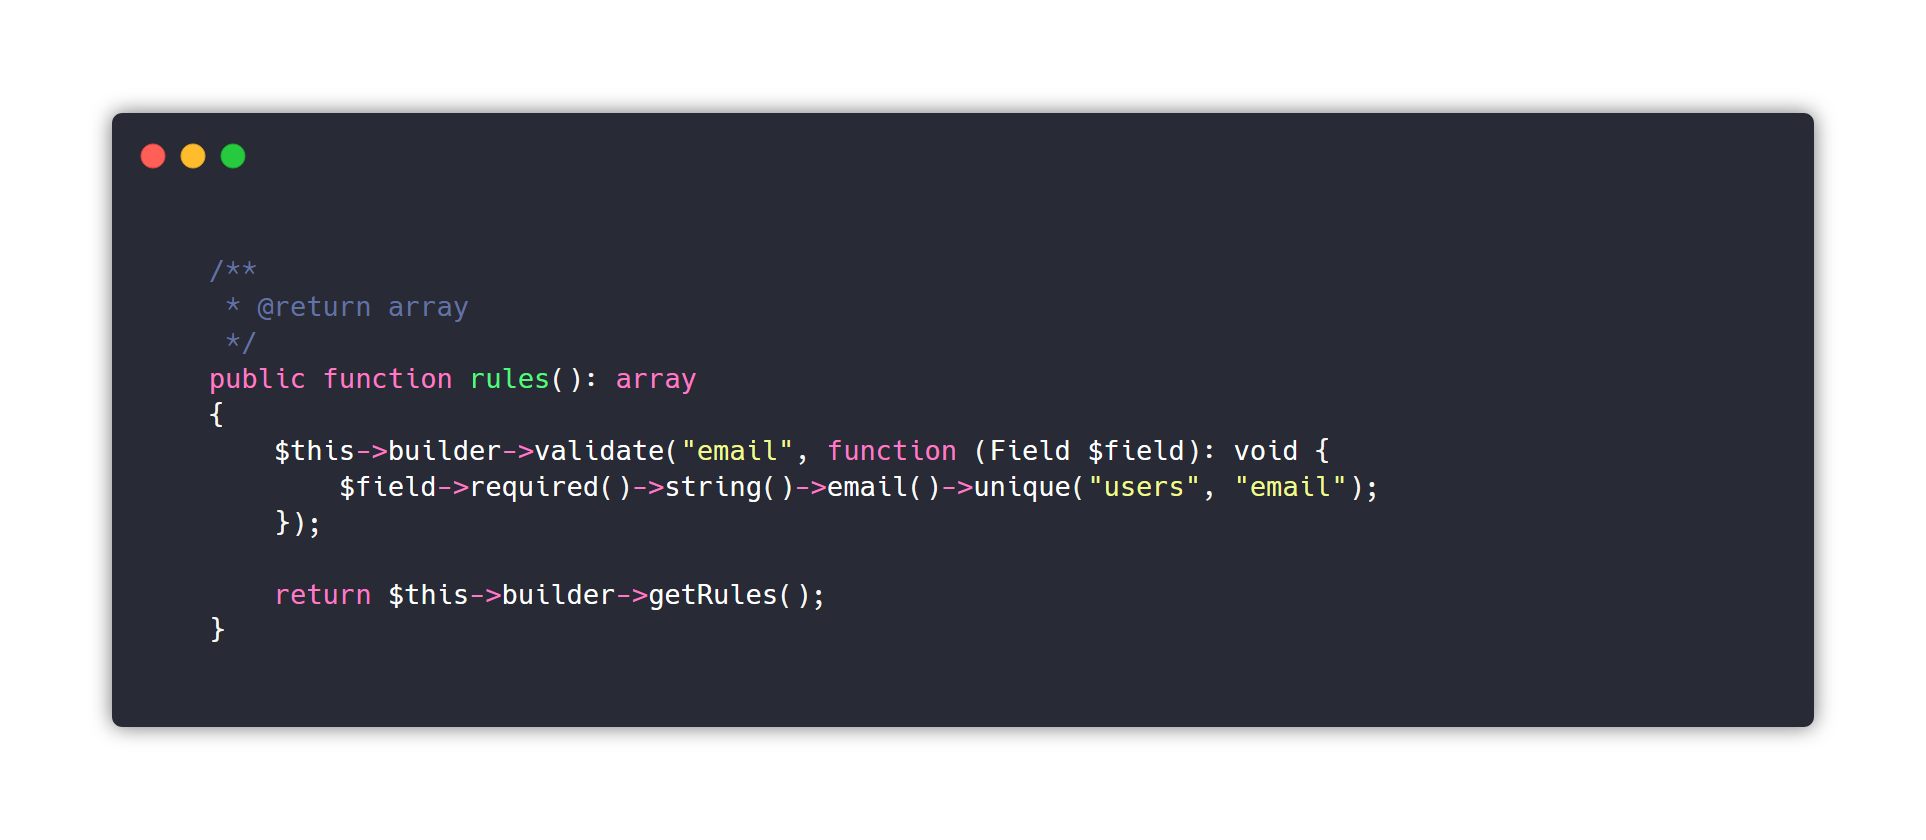 it's more lines of code but I personally think it's also more readable